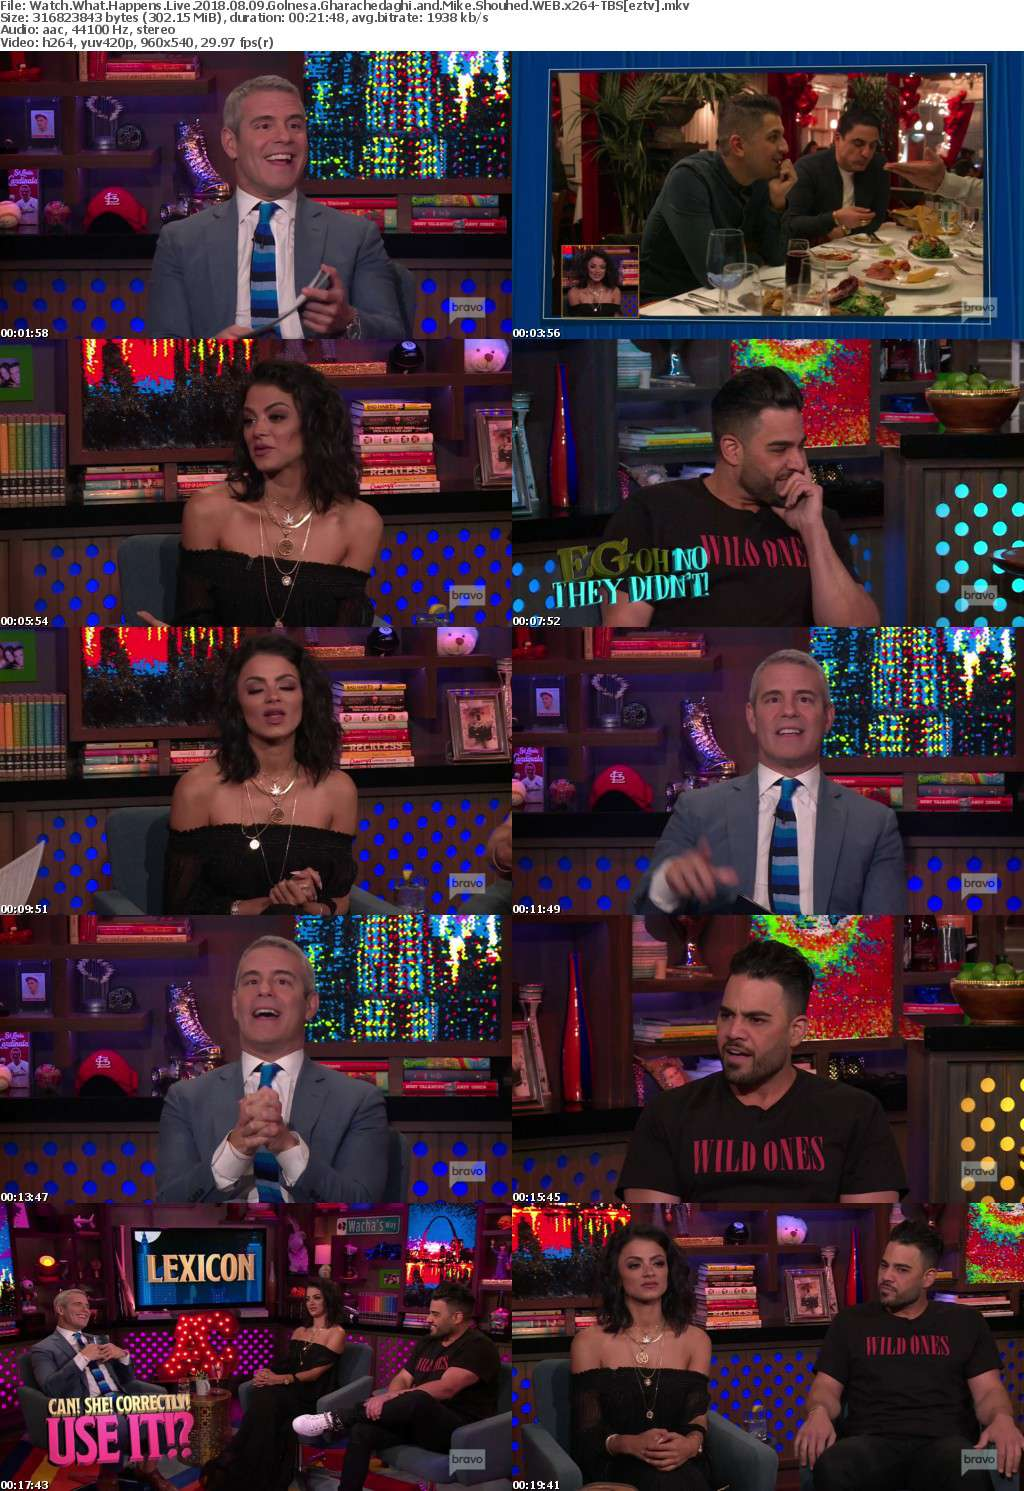 Watch What Happens Live 2018 08 09 Golnesa Gharachedaghi and Mike Shouhed WEB x264-TBS